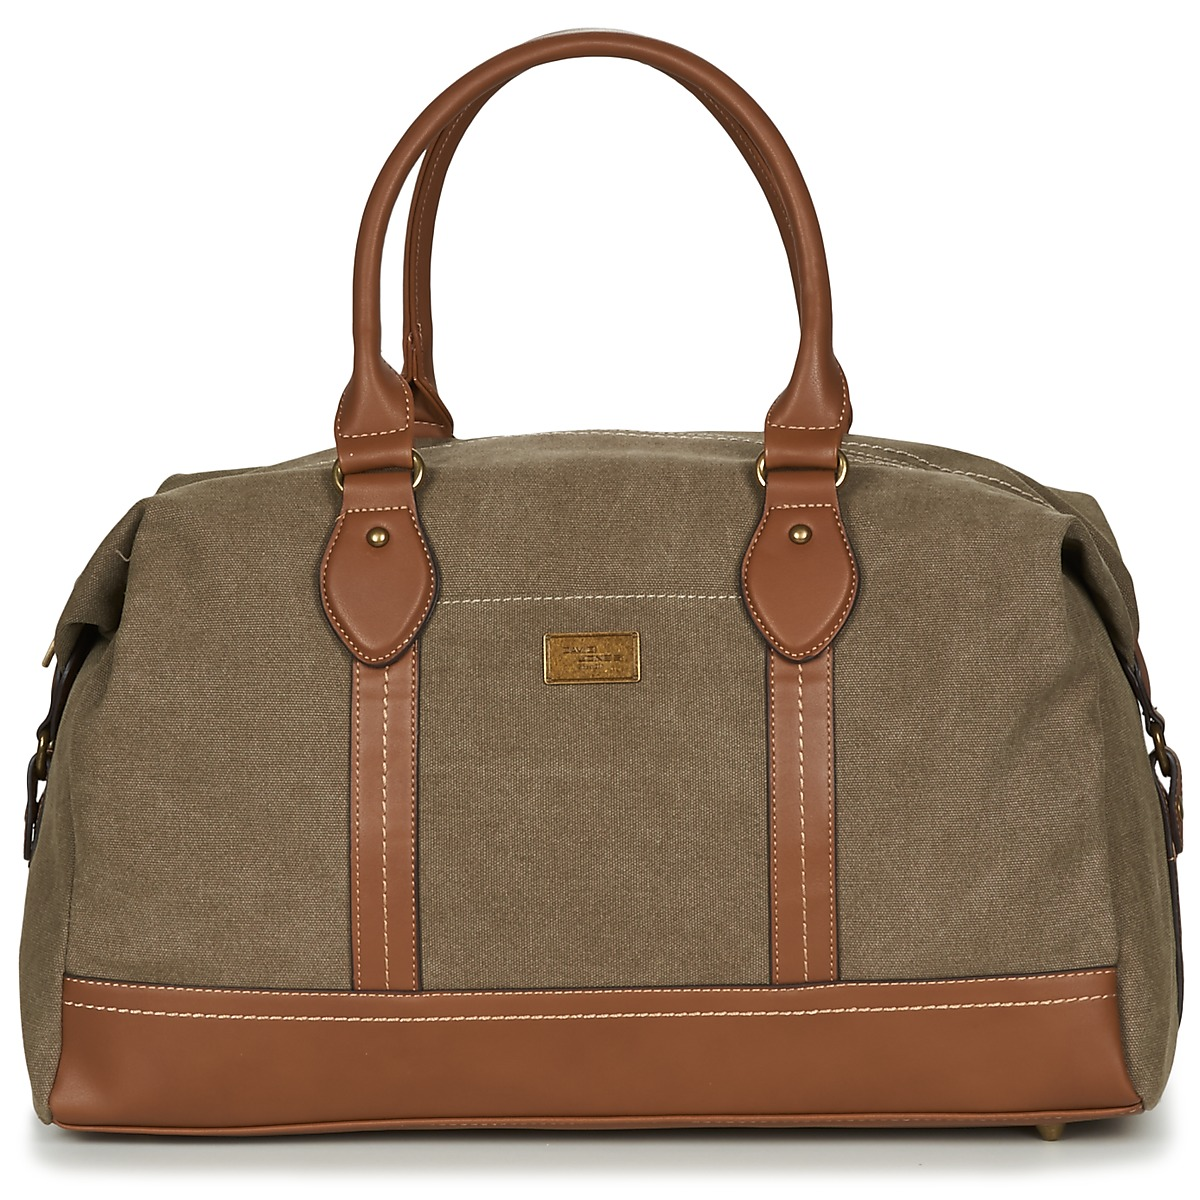 Borsa da viaggio donna David Jones  PRIMULA 32L  Marrone David Jones